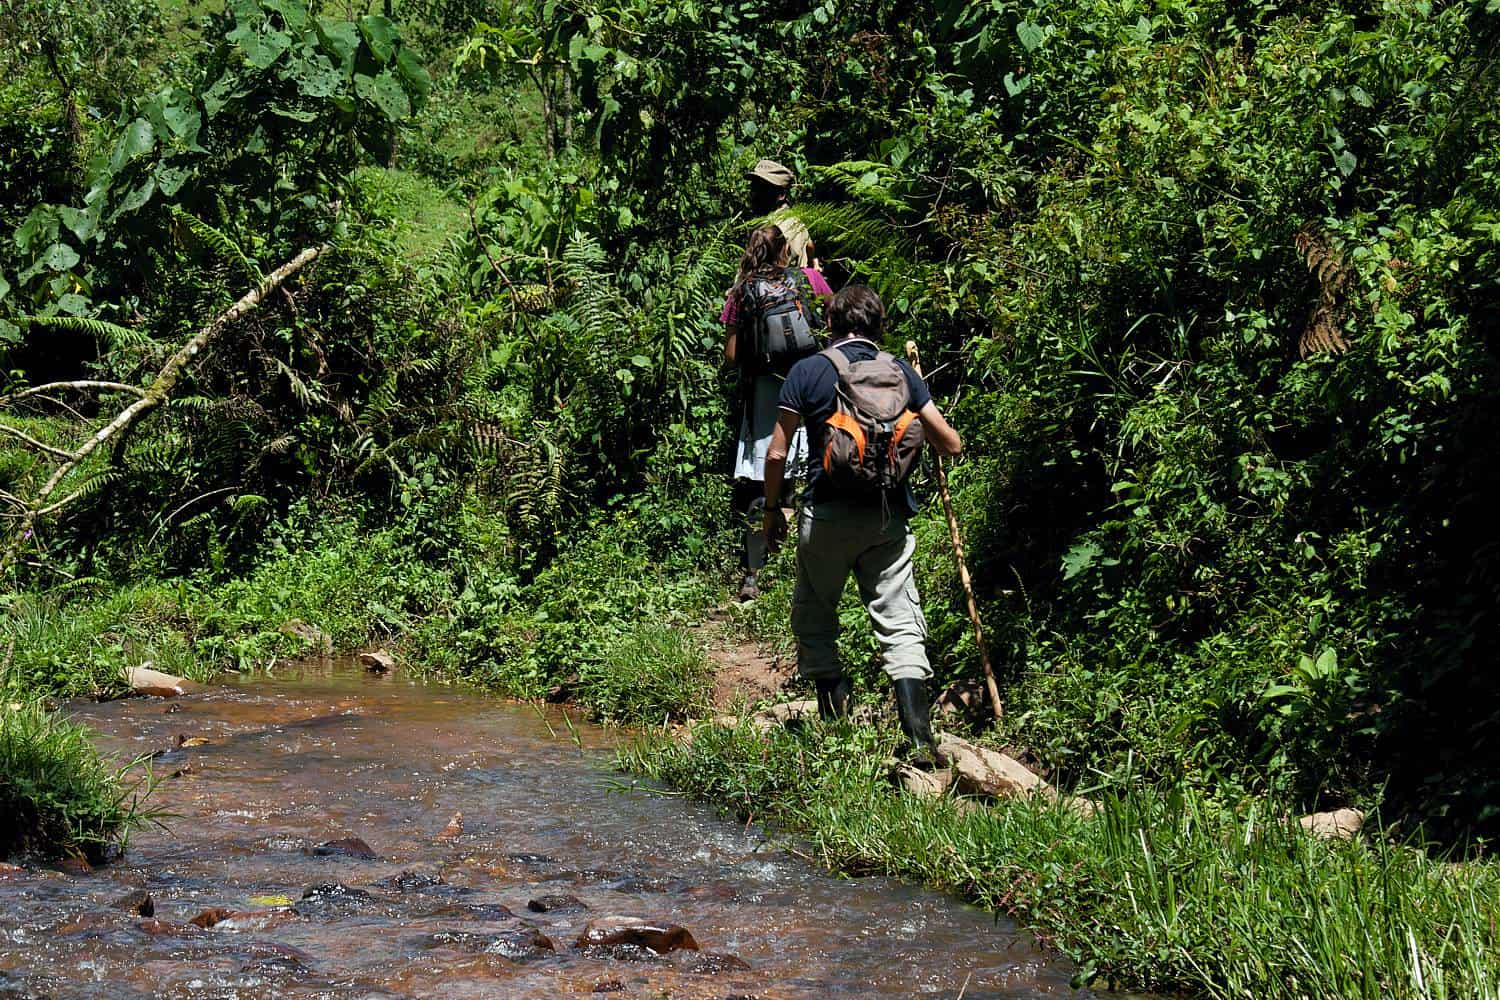 Permitted Age Limits For Gorilla Trekking In Uganda